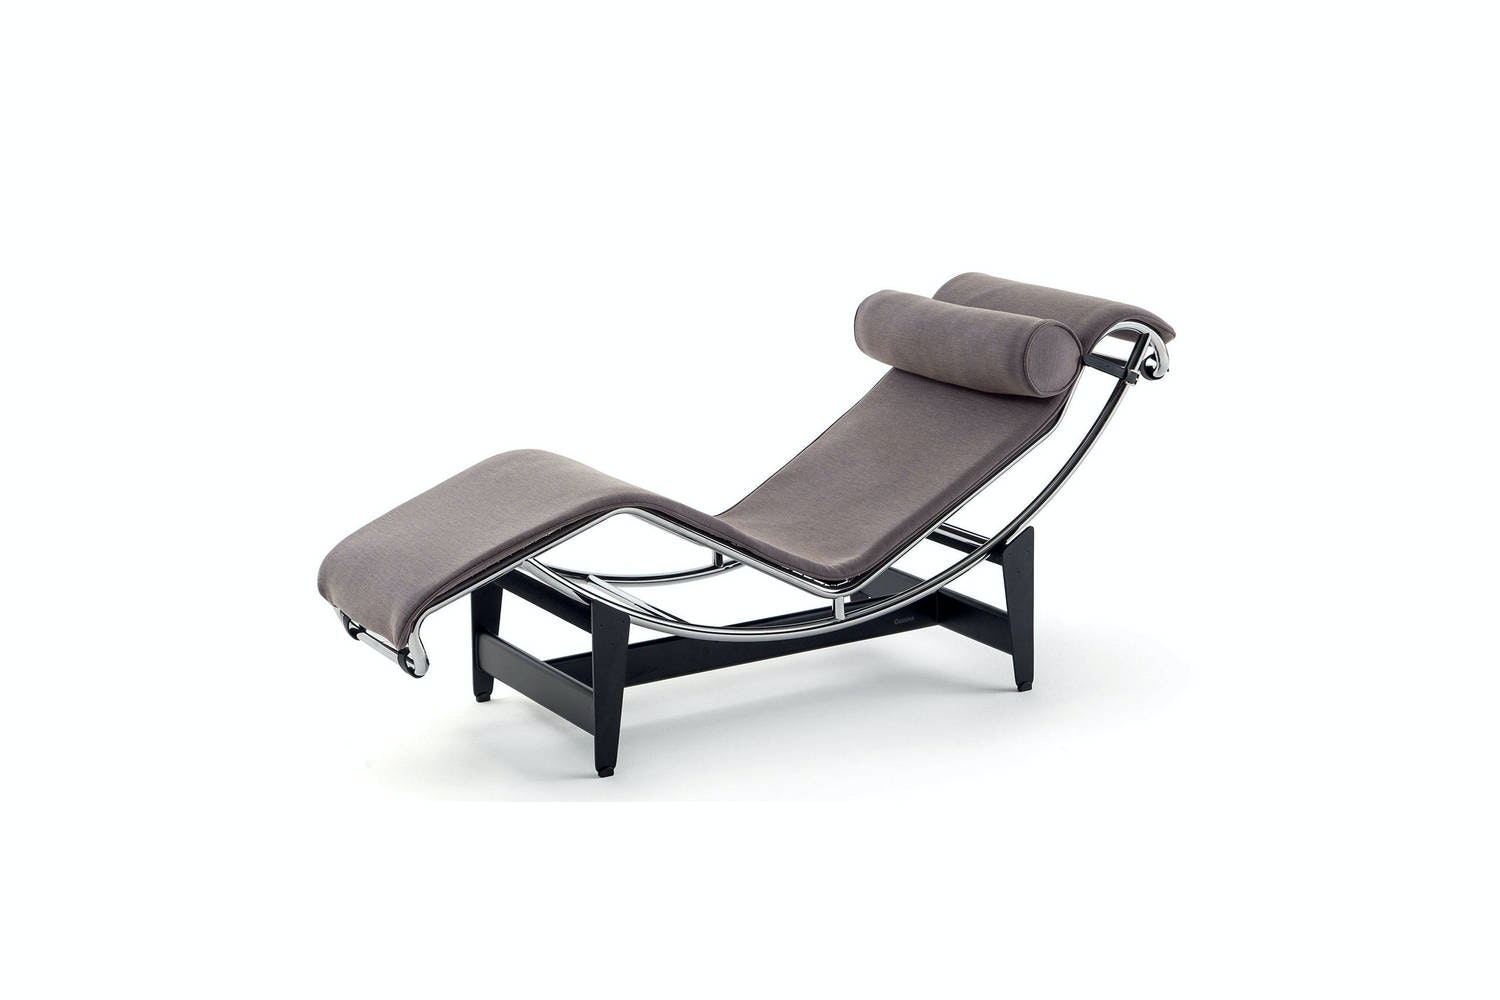 chaise charlotte perriand awesome chaise charlotte perriand charlotte perriand with chaise. Black Bedroom Furniture Sets. Home Design Ideas